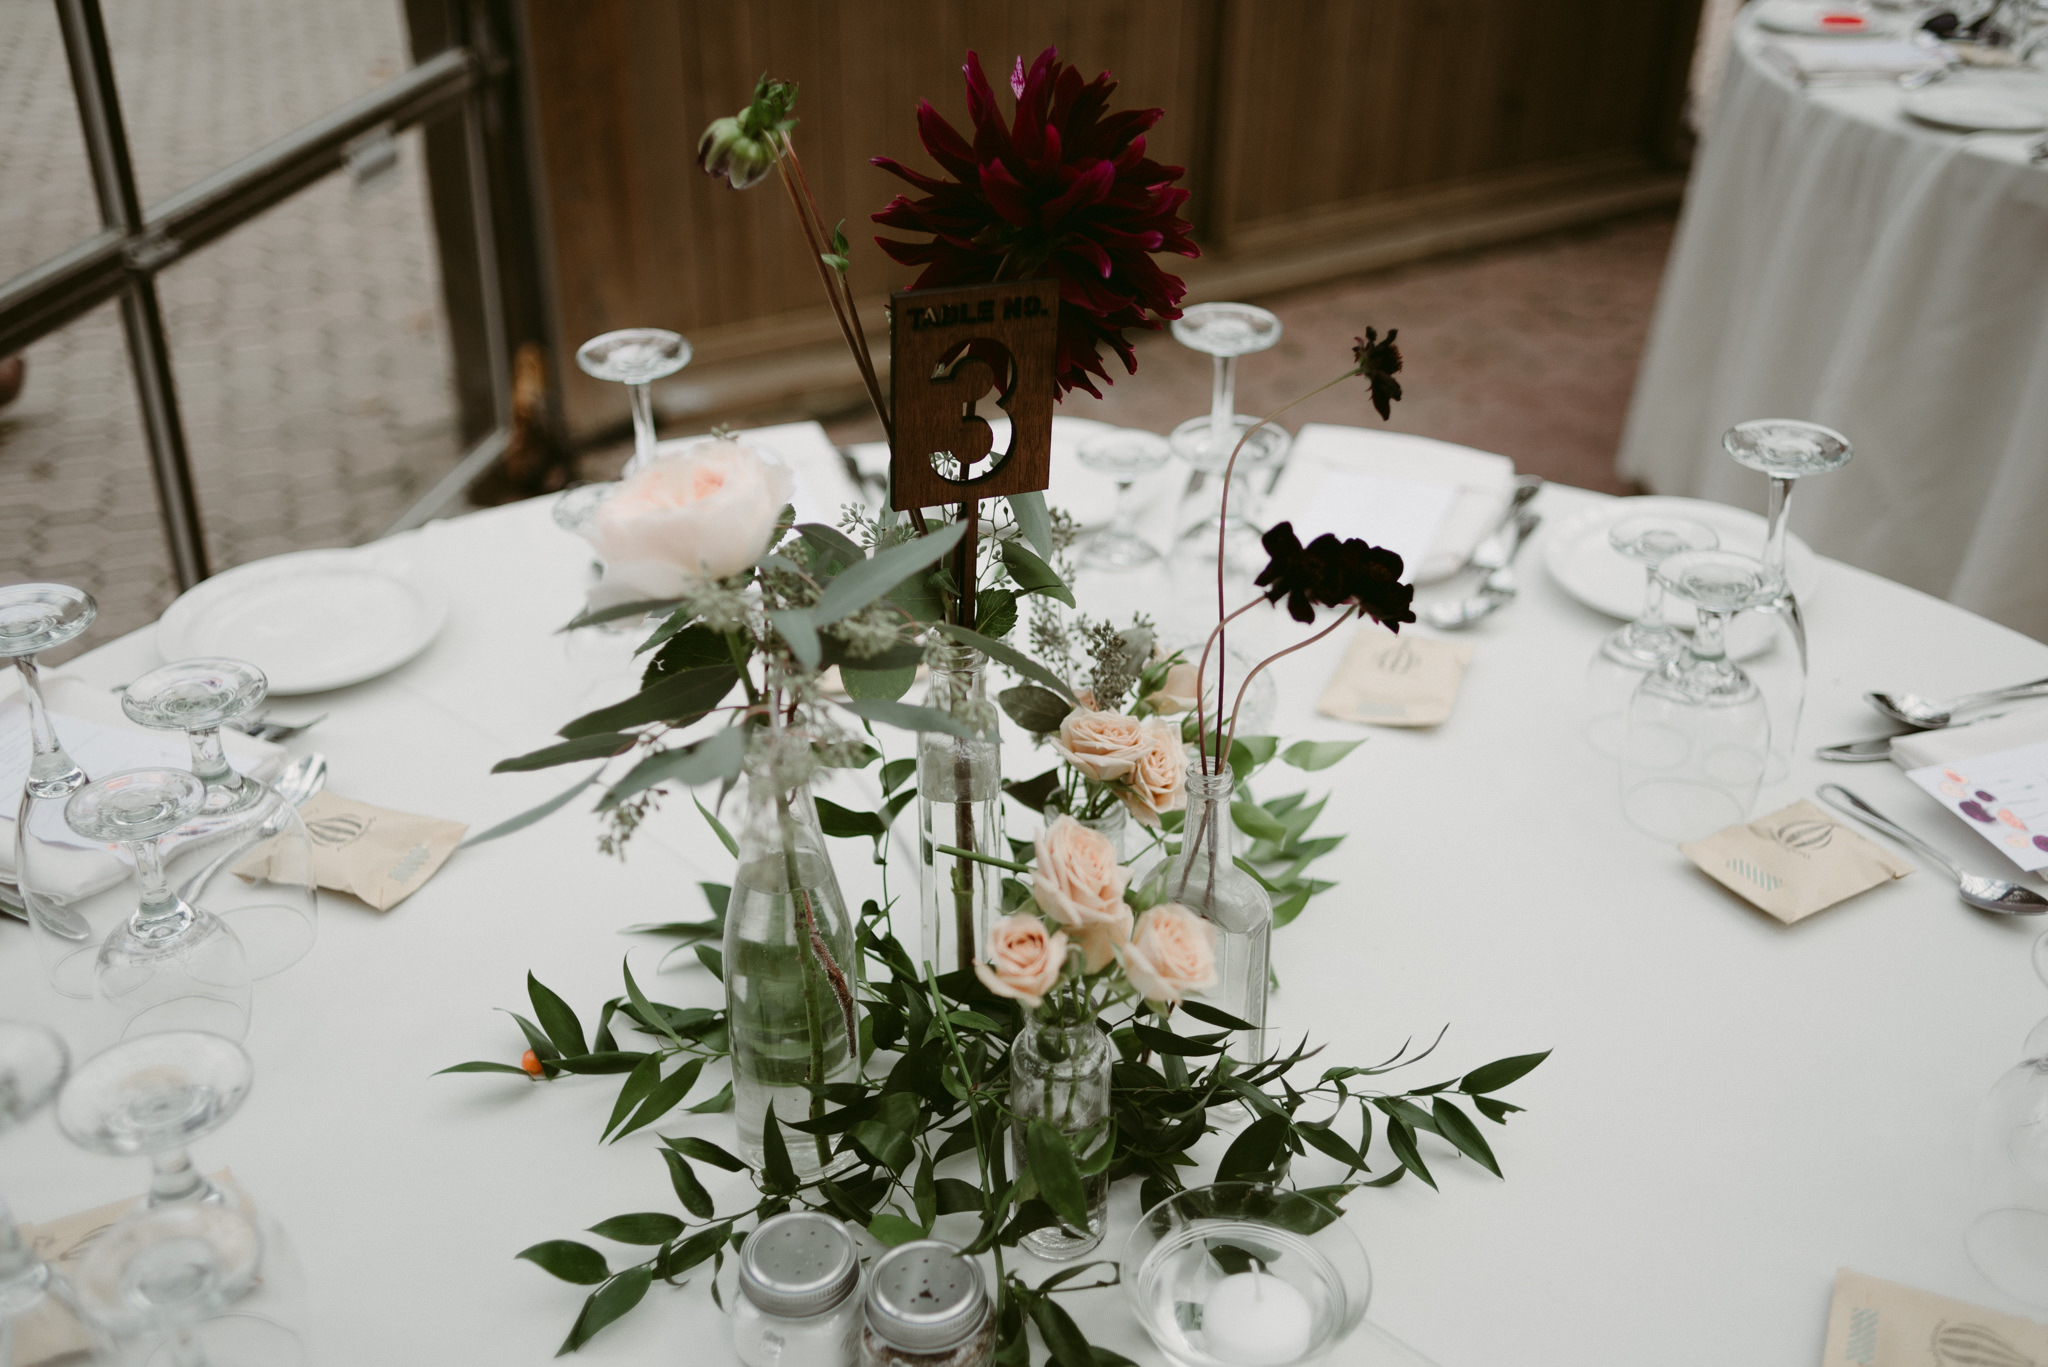 Flower and greenery centrepieces for wedding reception with wooden table number